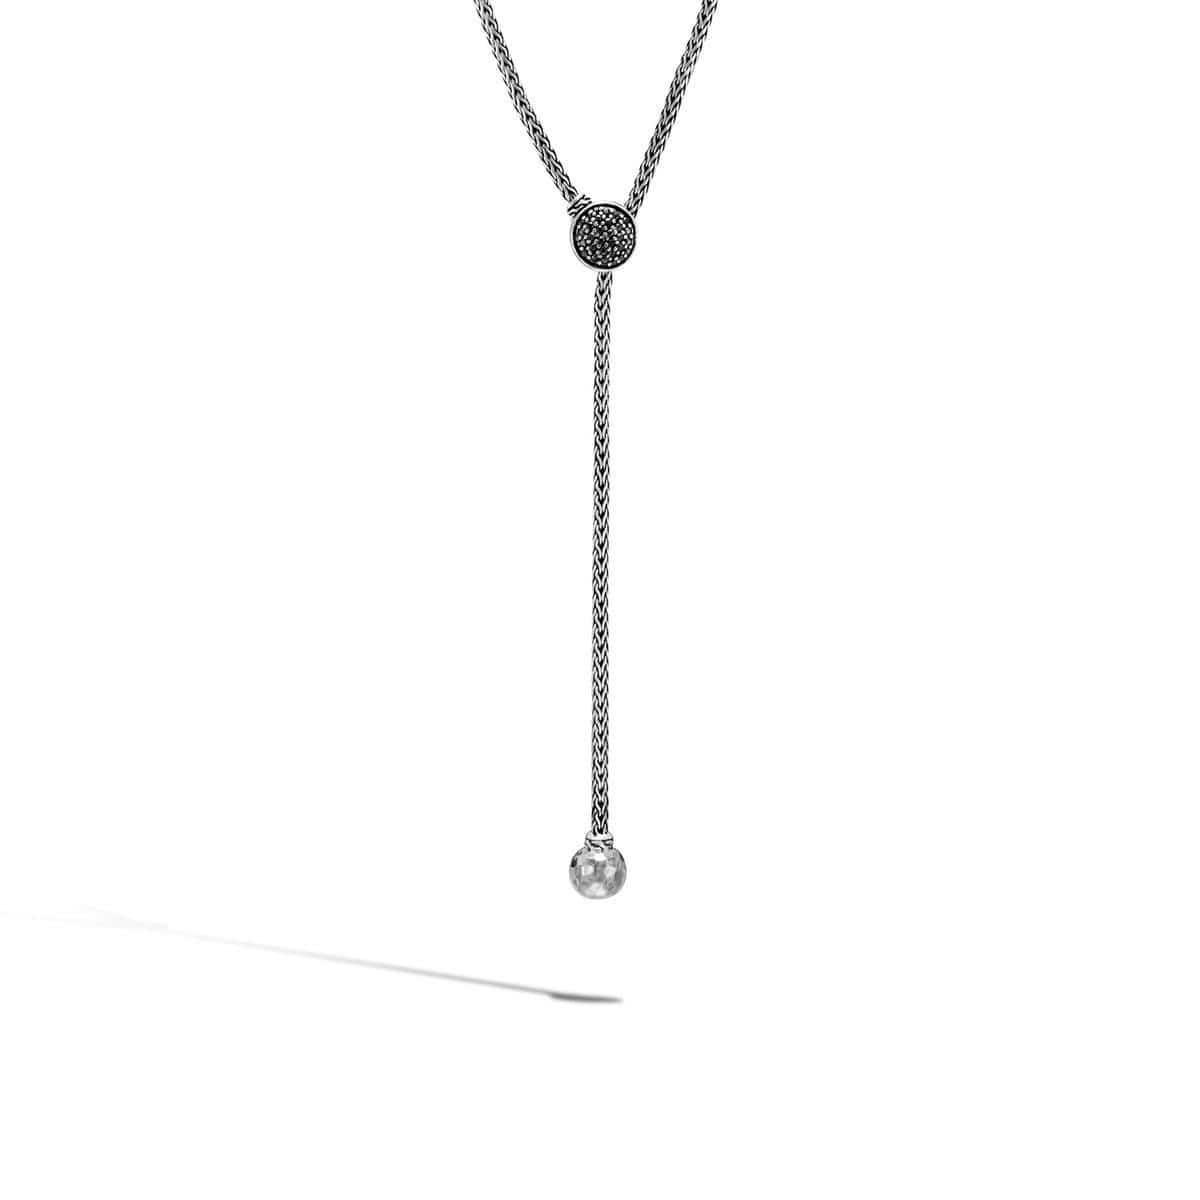 Classic Chain Drop Necklace - NBS9995834BLSBN-John Hardy-Renee Taylor Gallery